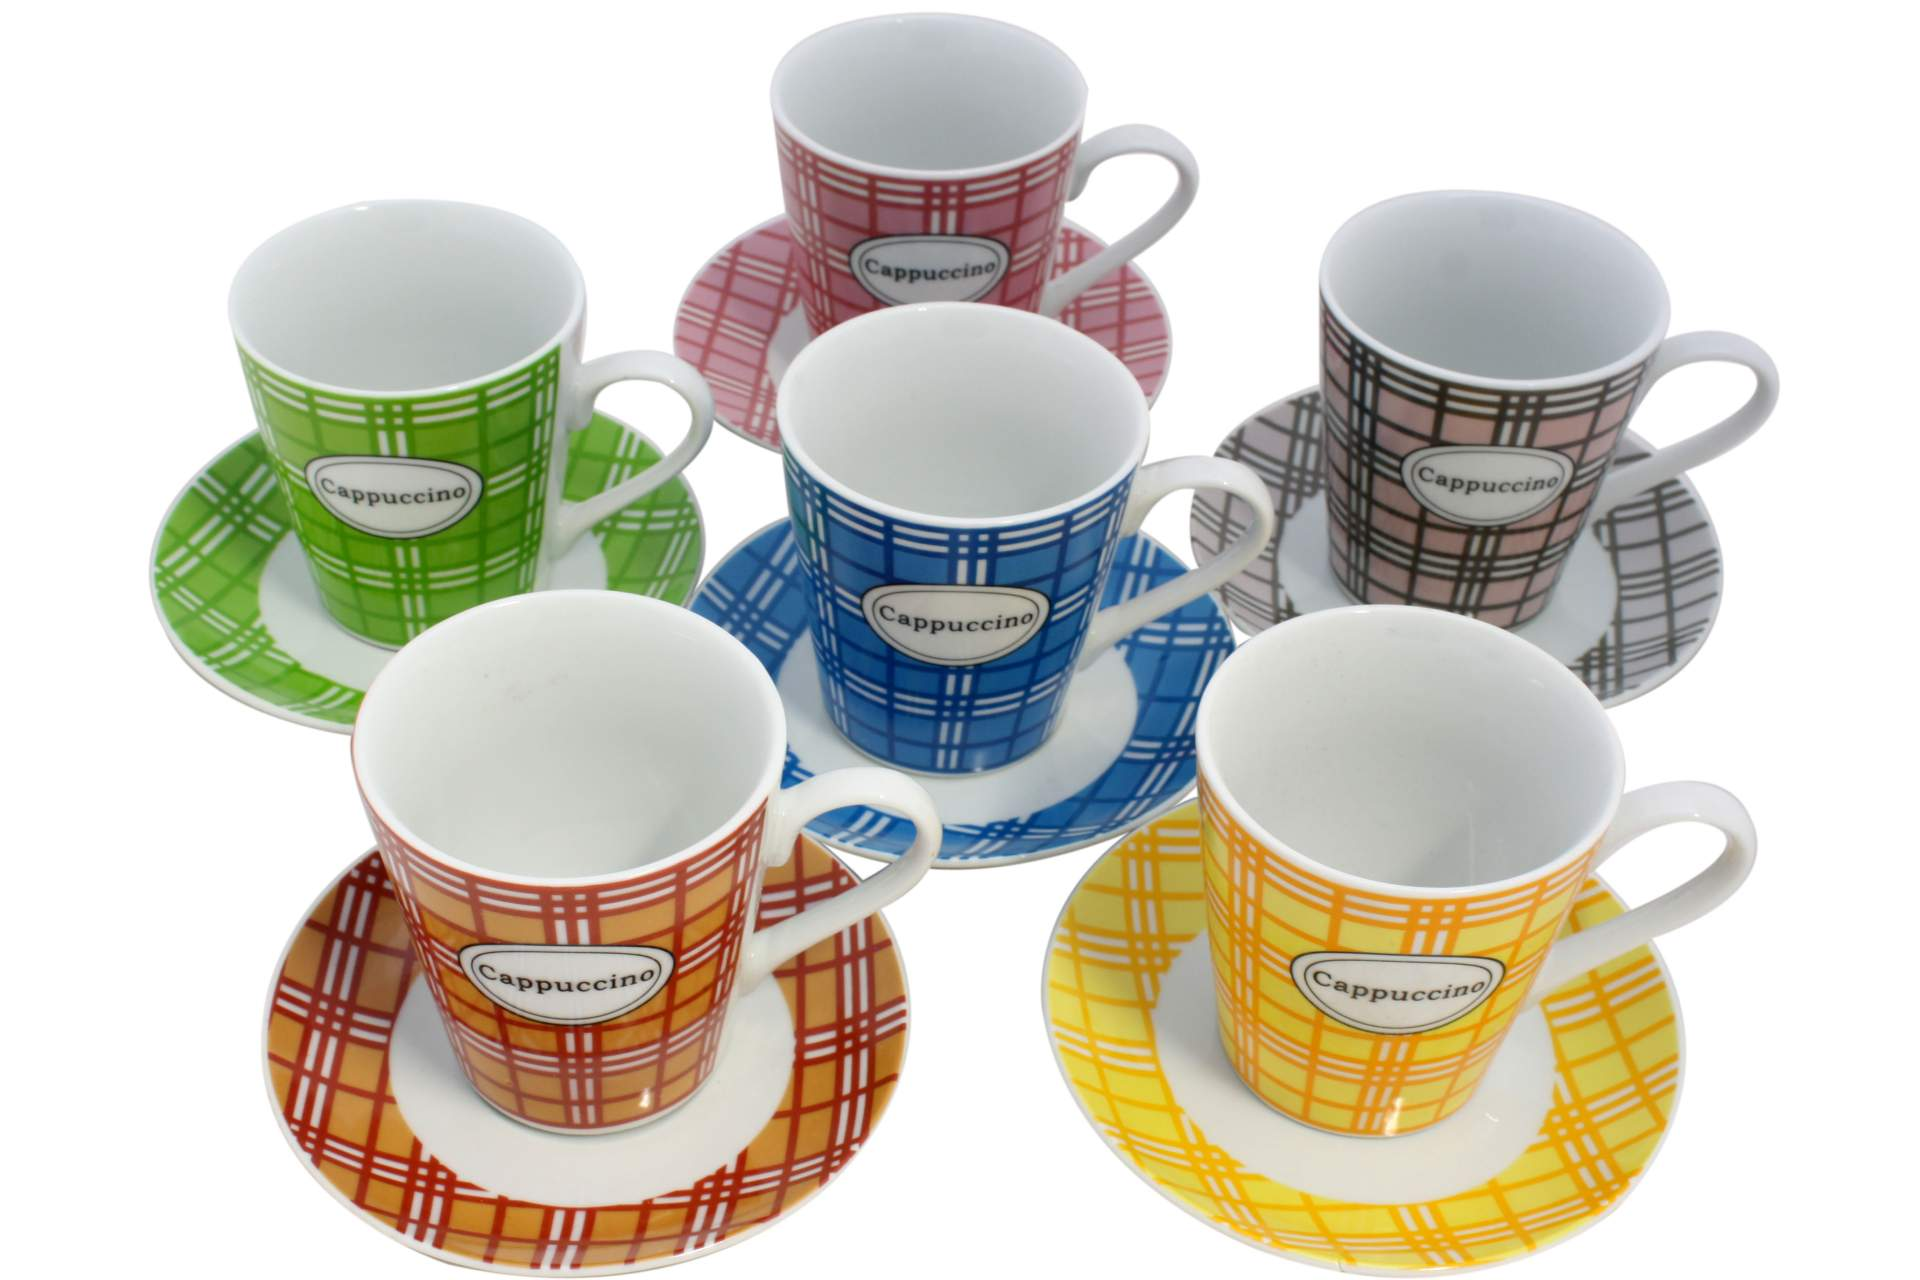 6 er cappuccino tassen set schrift tasse mit untertasse cappuccinotasse 12 tlg ebay. Black Bedroom Furniture Sets. Home Design Ideas